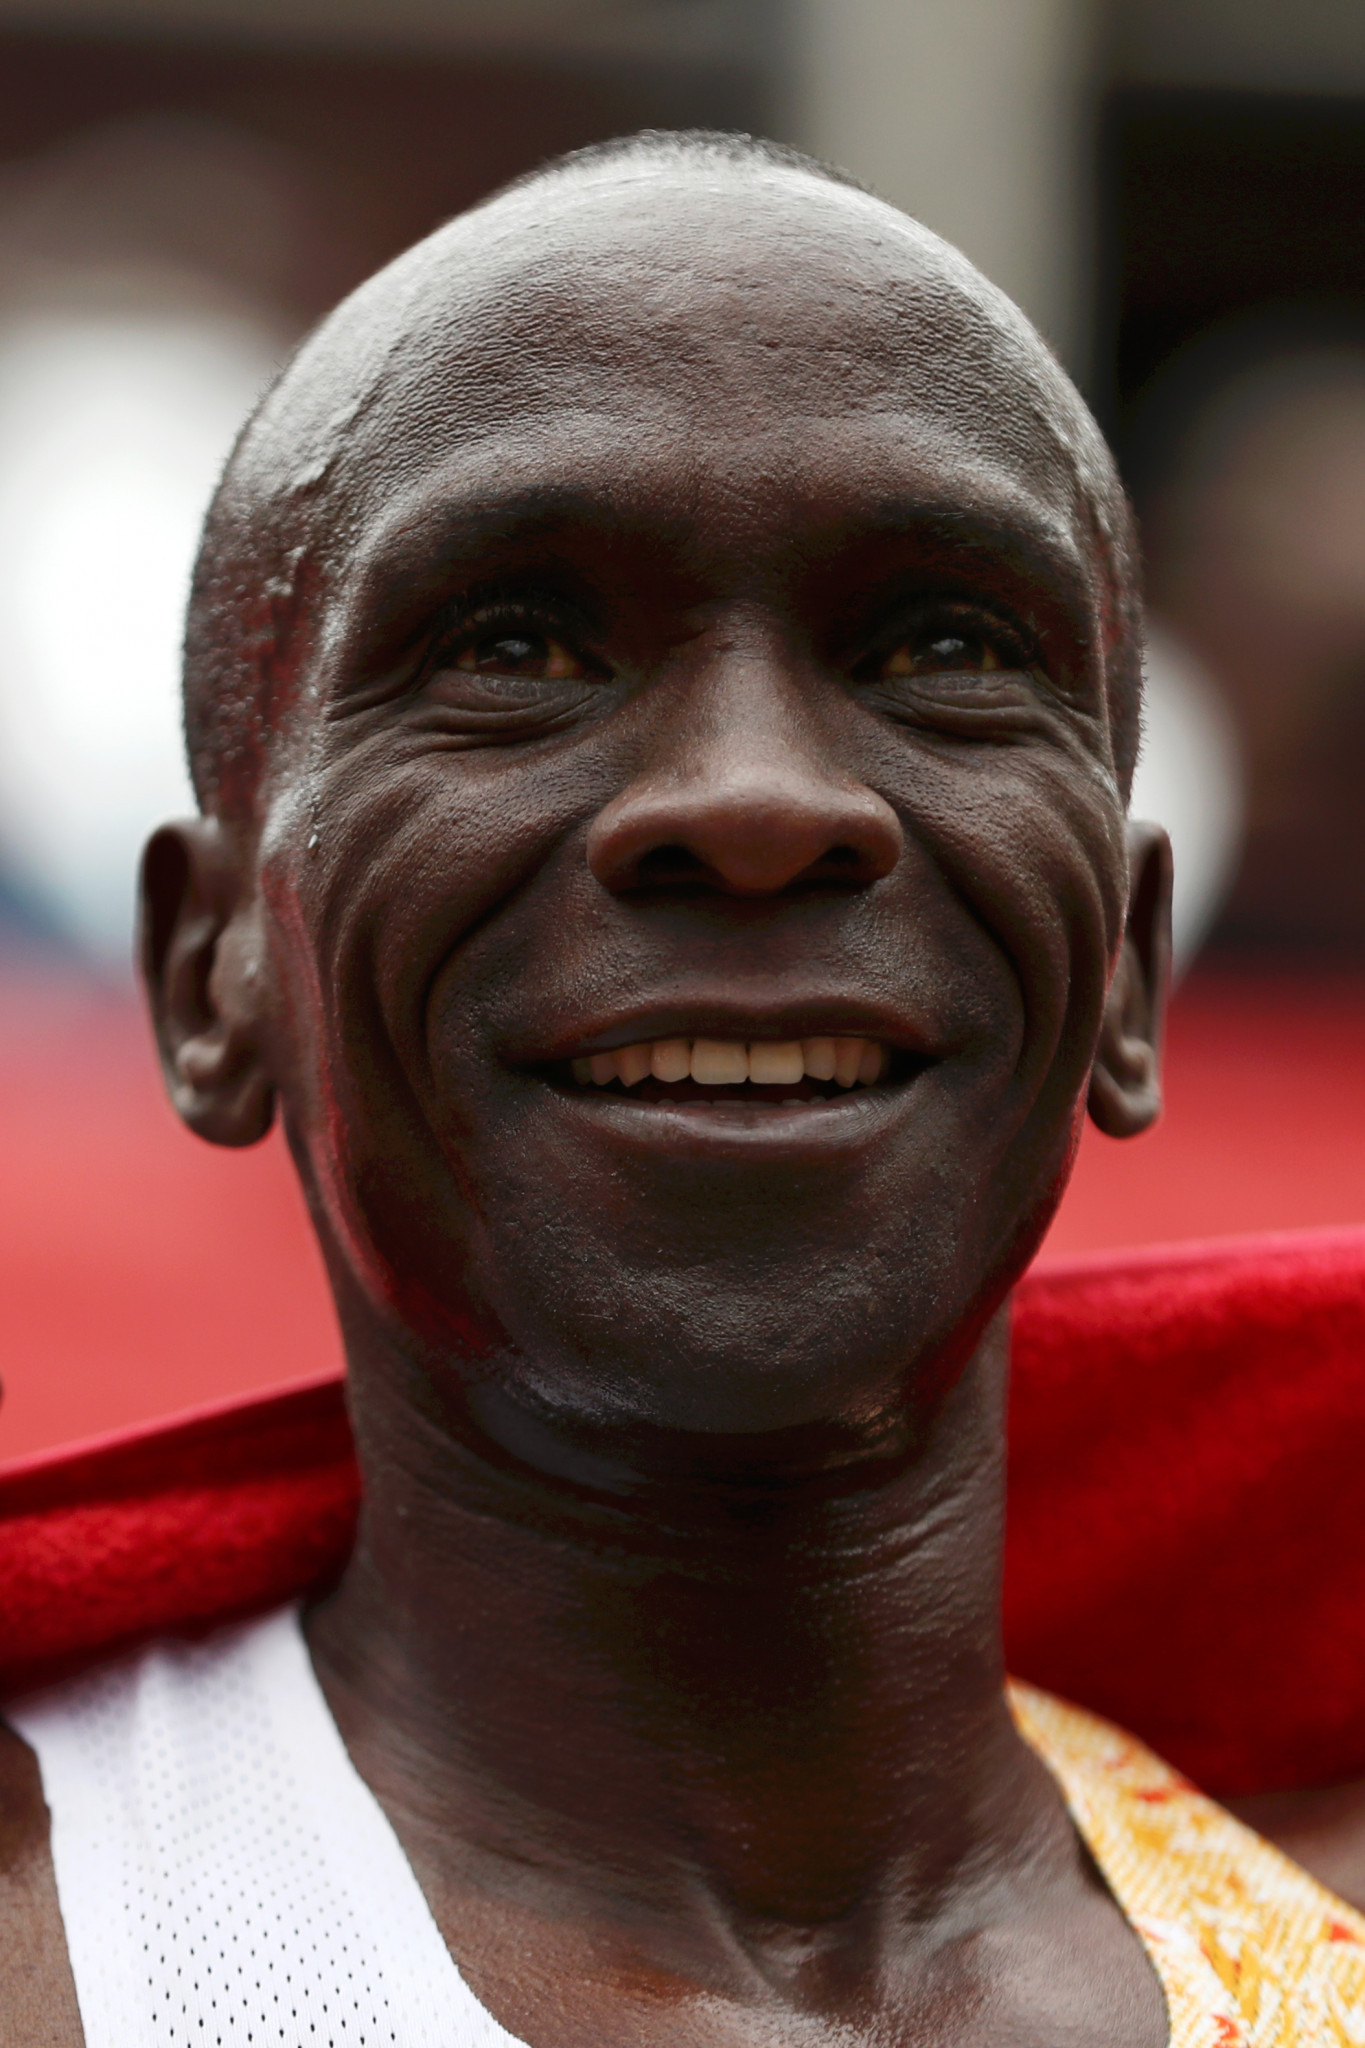 Eliud Kipchoge is to make a second attempt later this year at running the maraathon in under two hours ©Getty Images